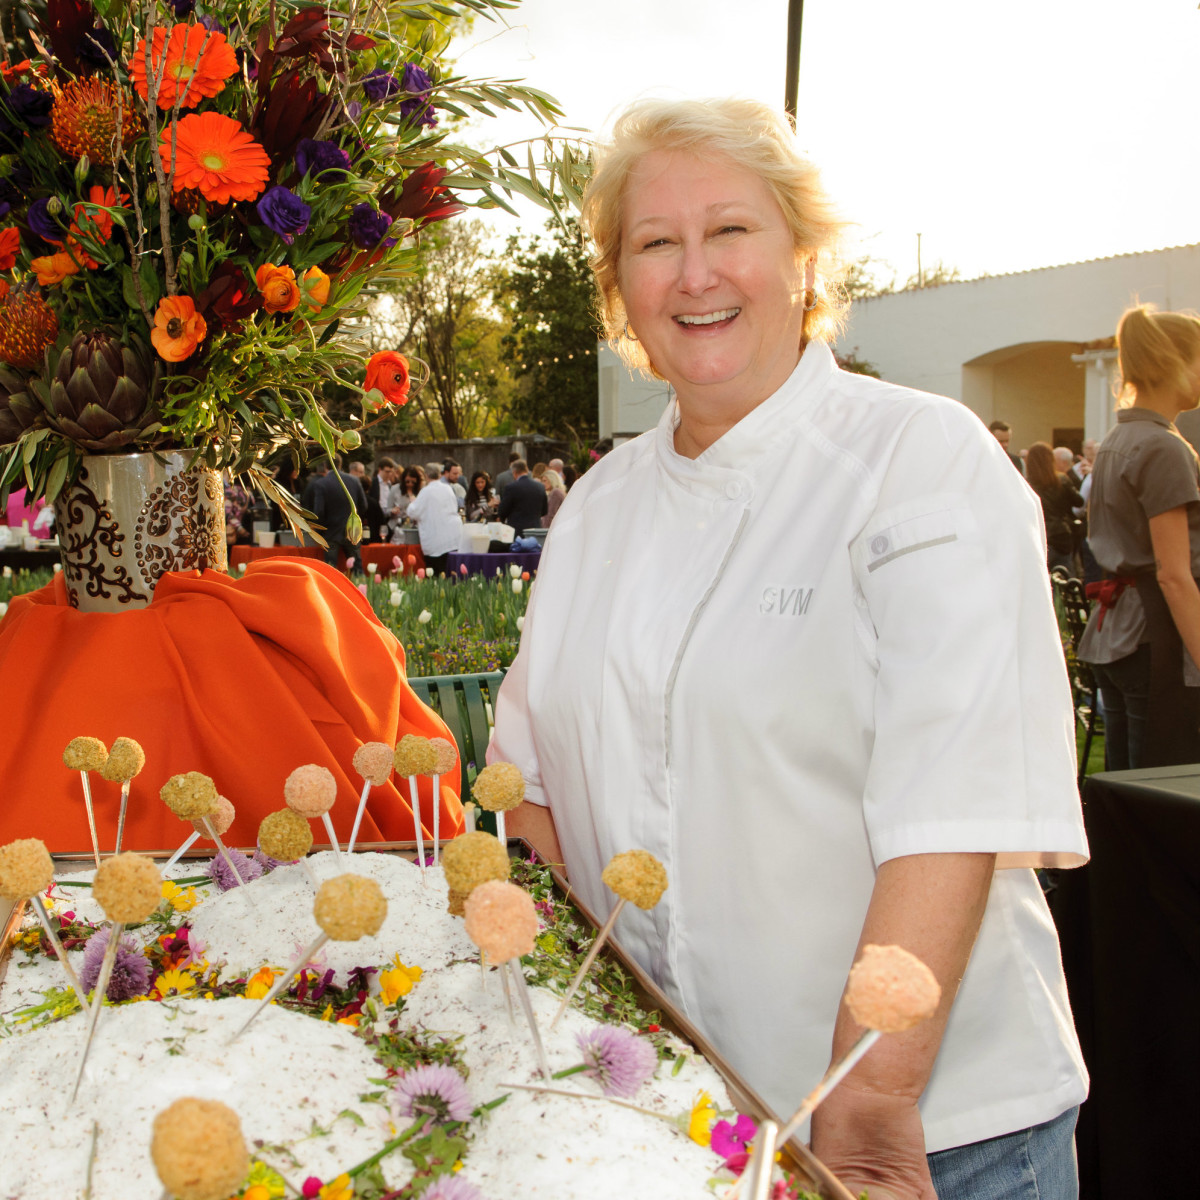 Chef Sharon Van Meter